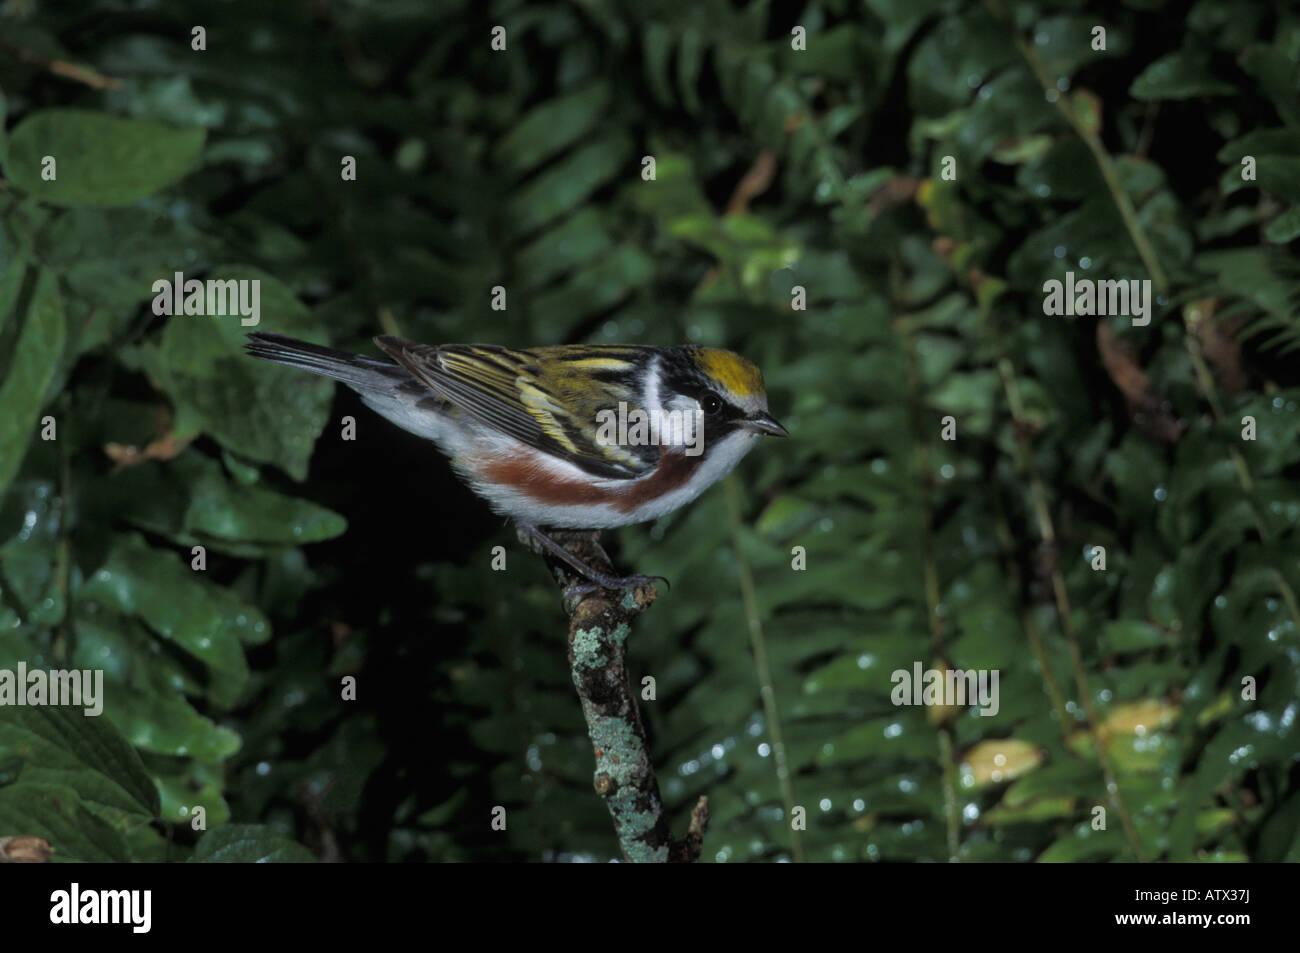 Chestnut-sided Warbler male, Dendroica pensylvanica, perched. Stock Photo